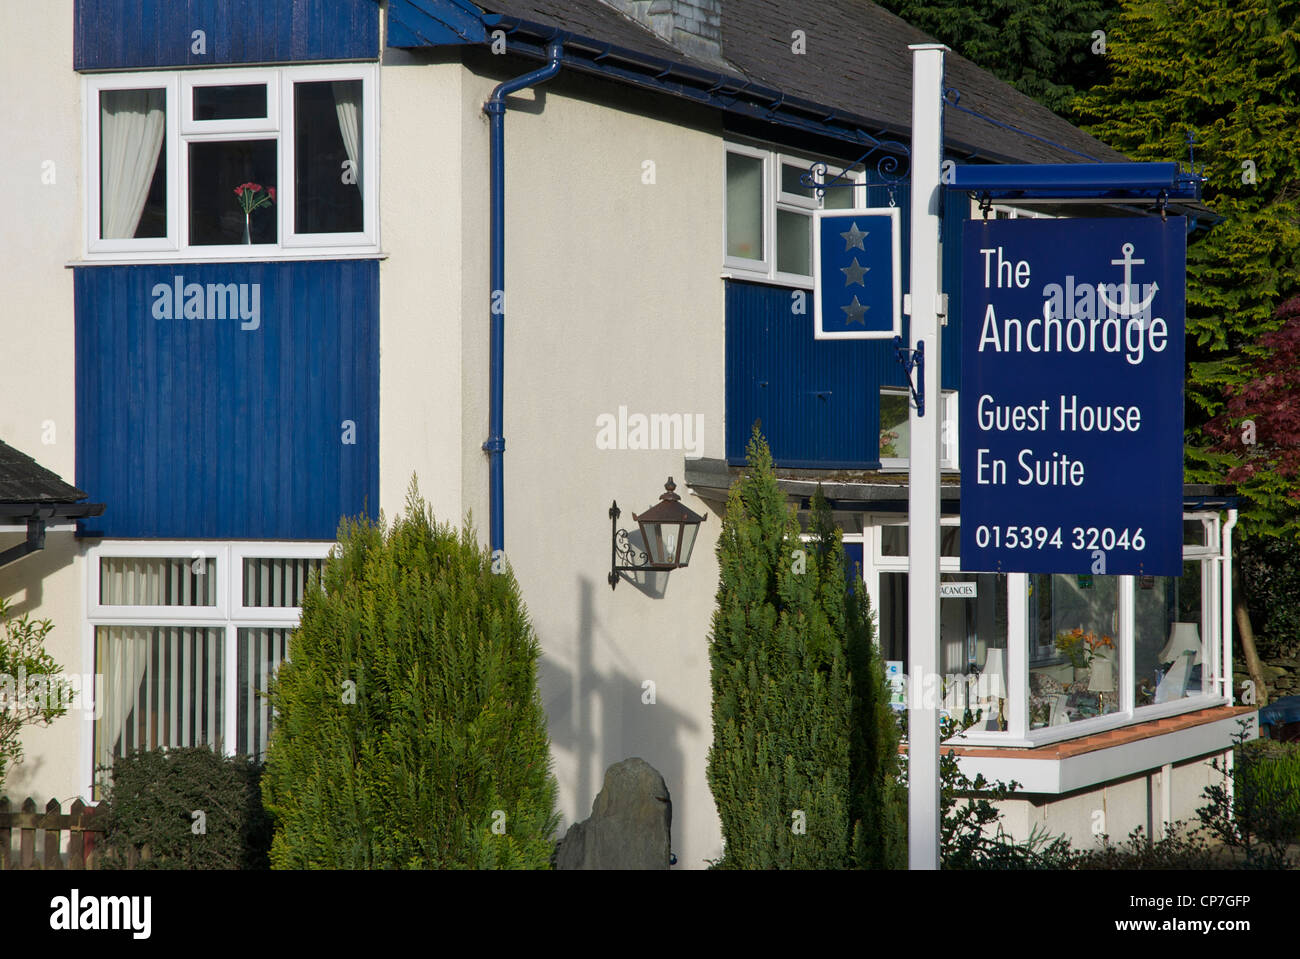 The Anchorage Guest House, in Rydal Road, Ambleside, Lake District, Cumbria, England UK - Stock Image